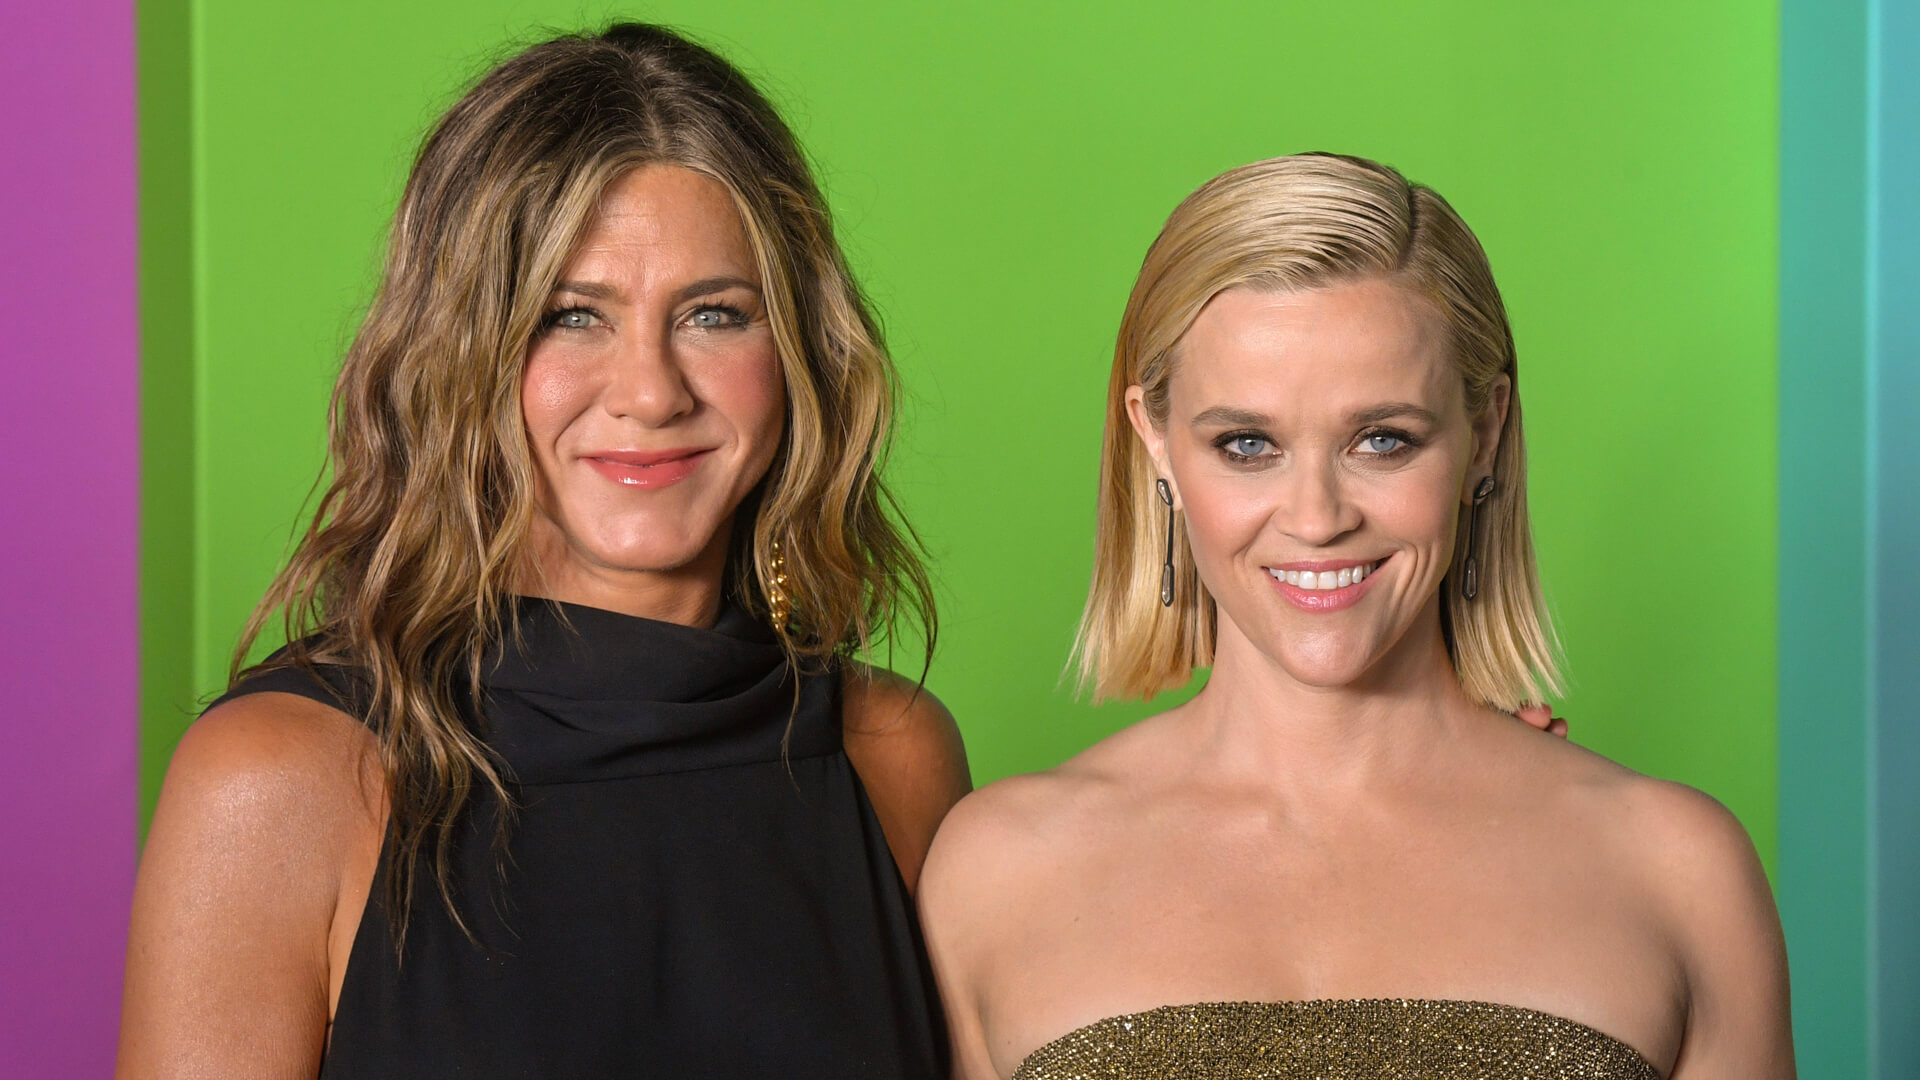 How Rich Are Reese Witherspoon and Other Top TV Stars?